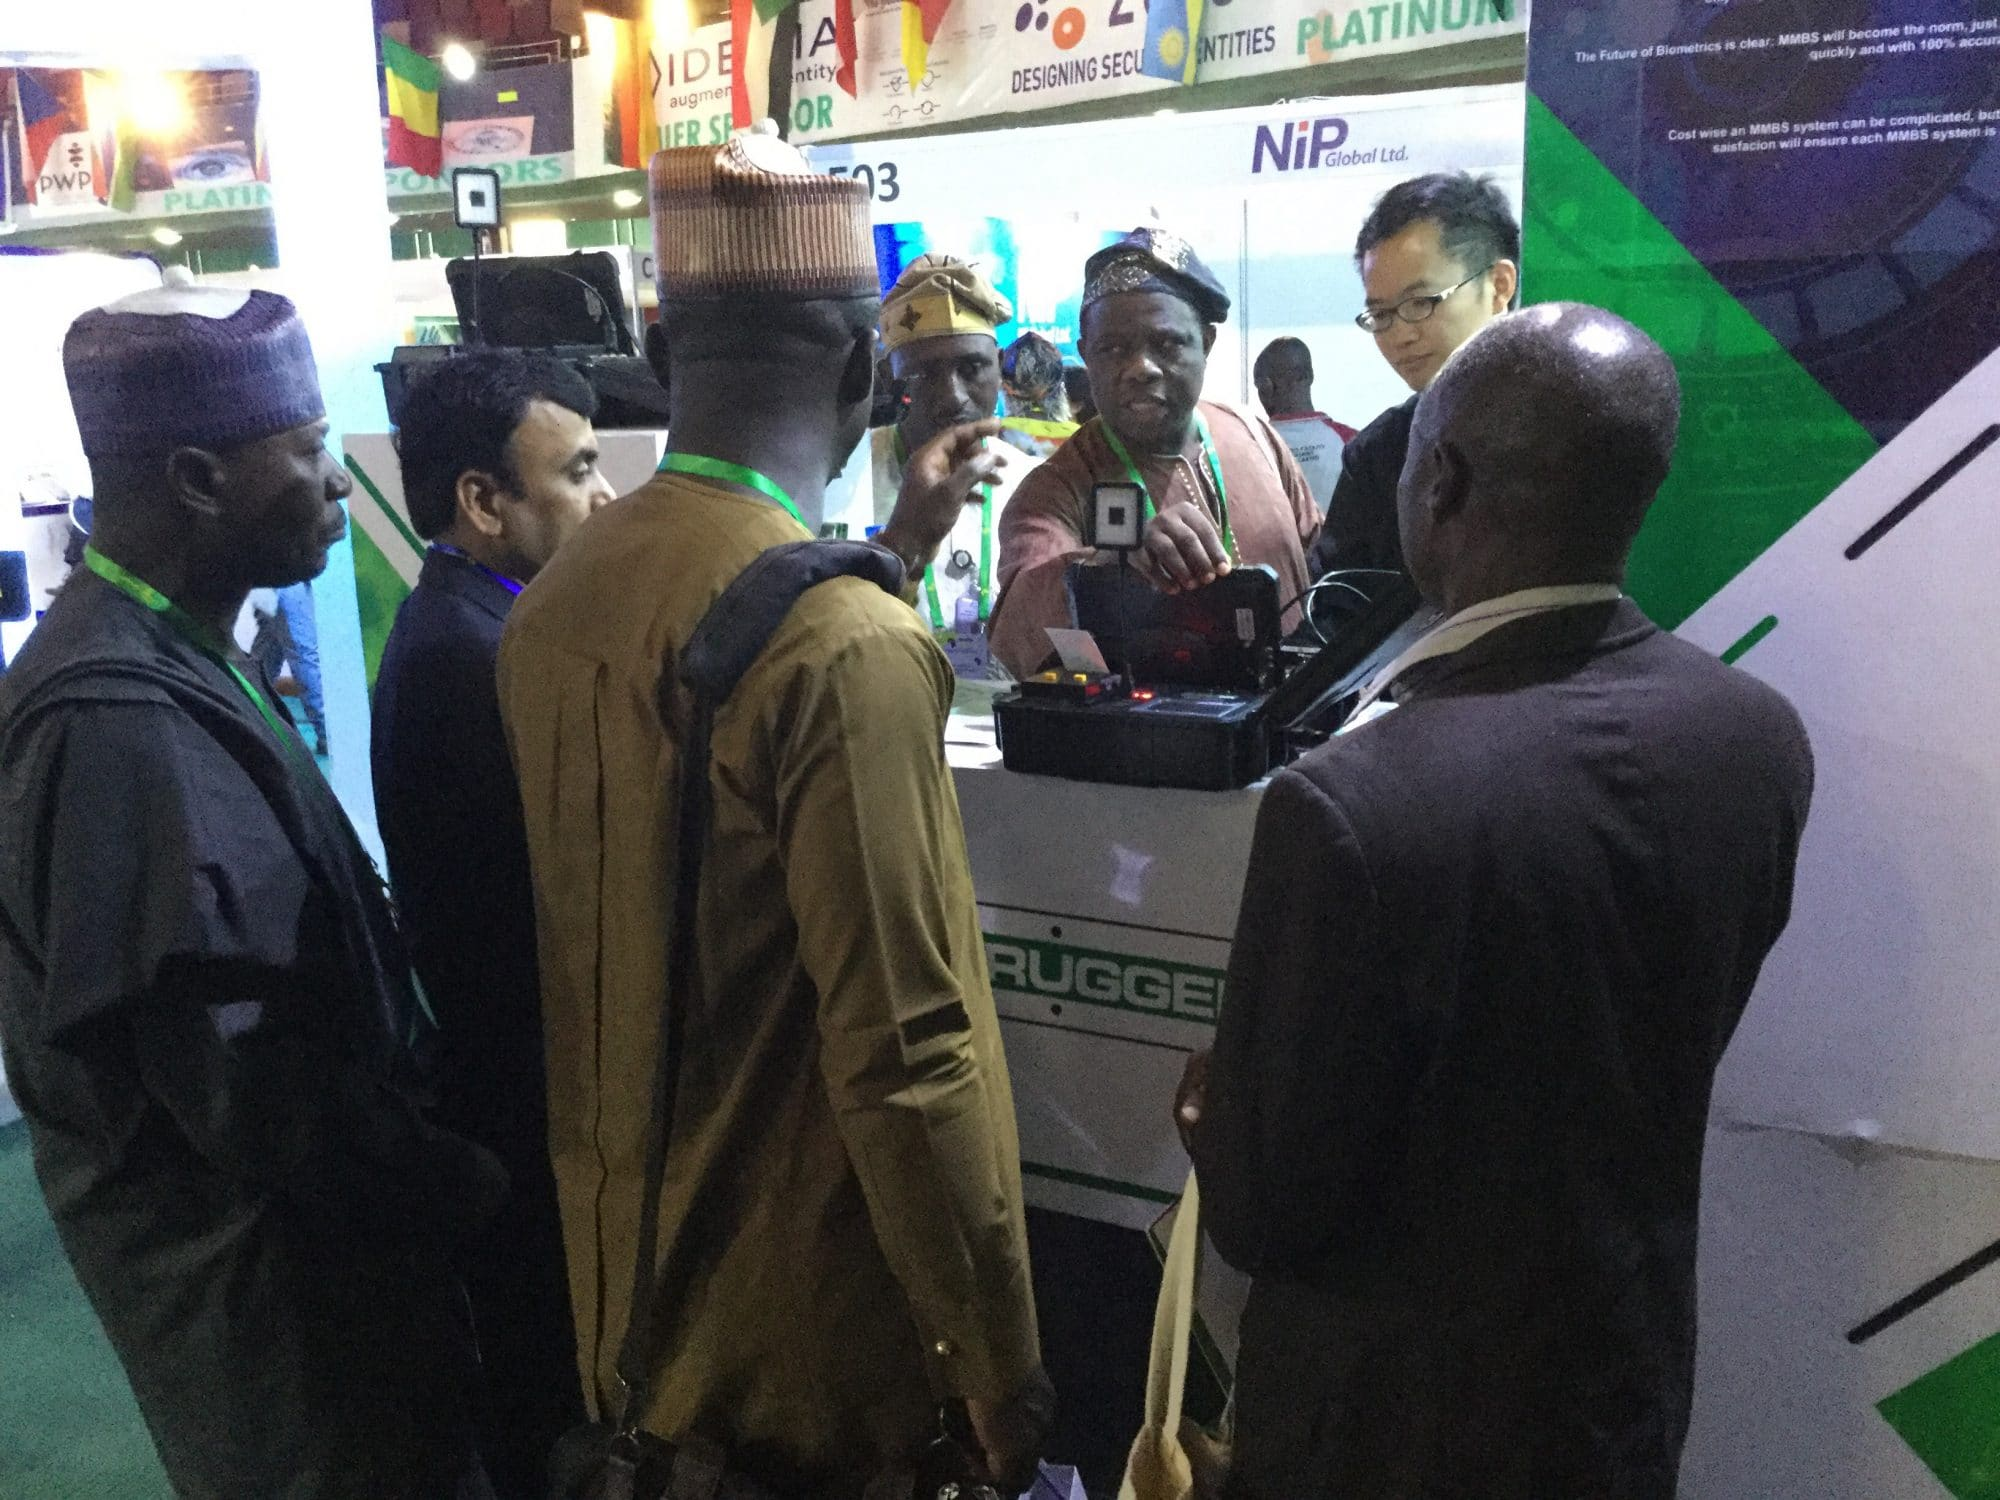 Biorugged-booth-ID4Africa2018